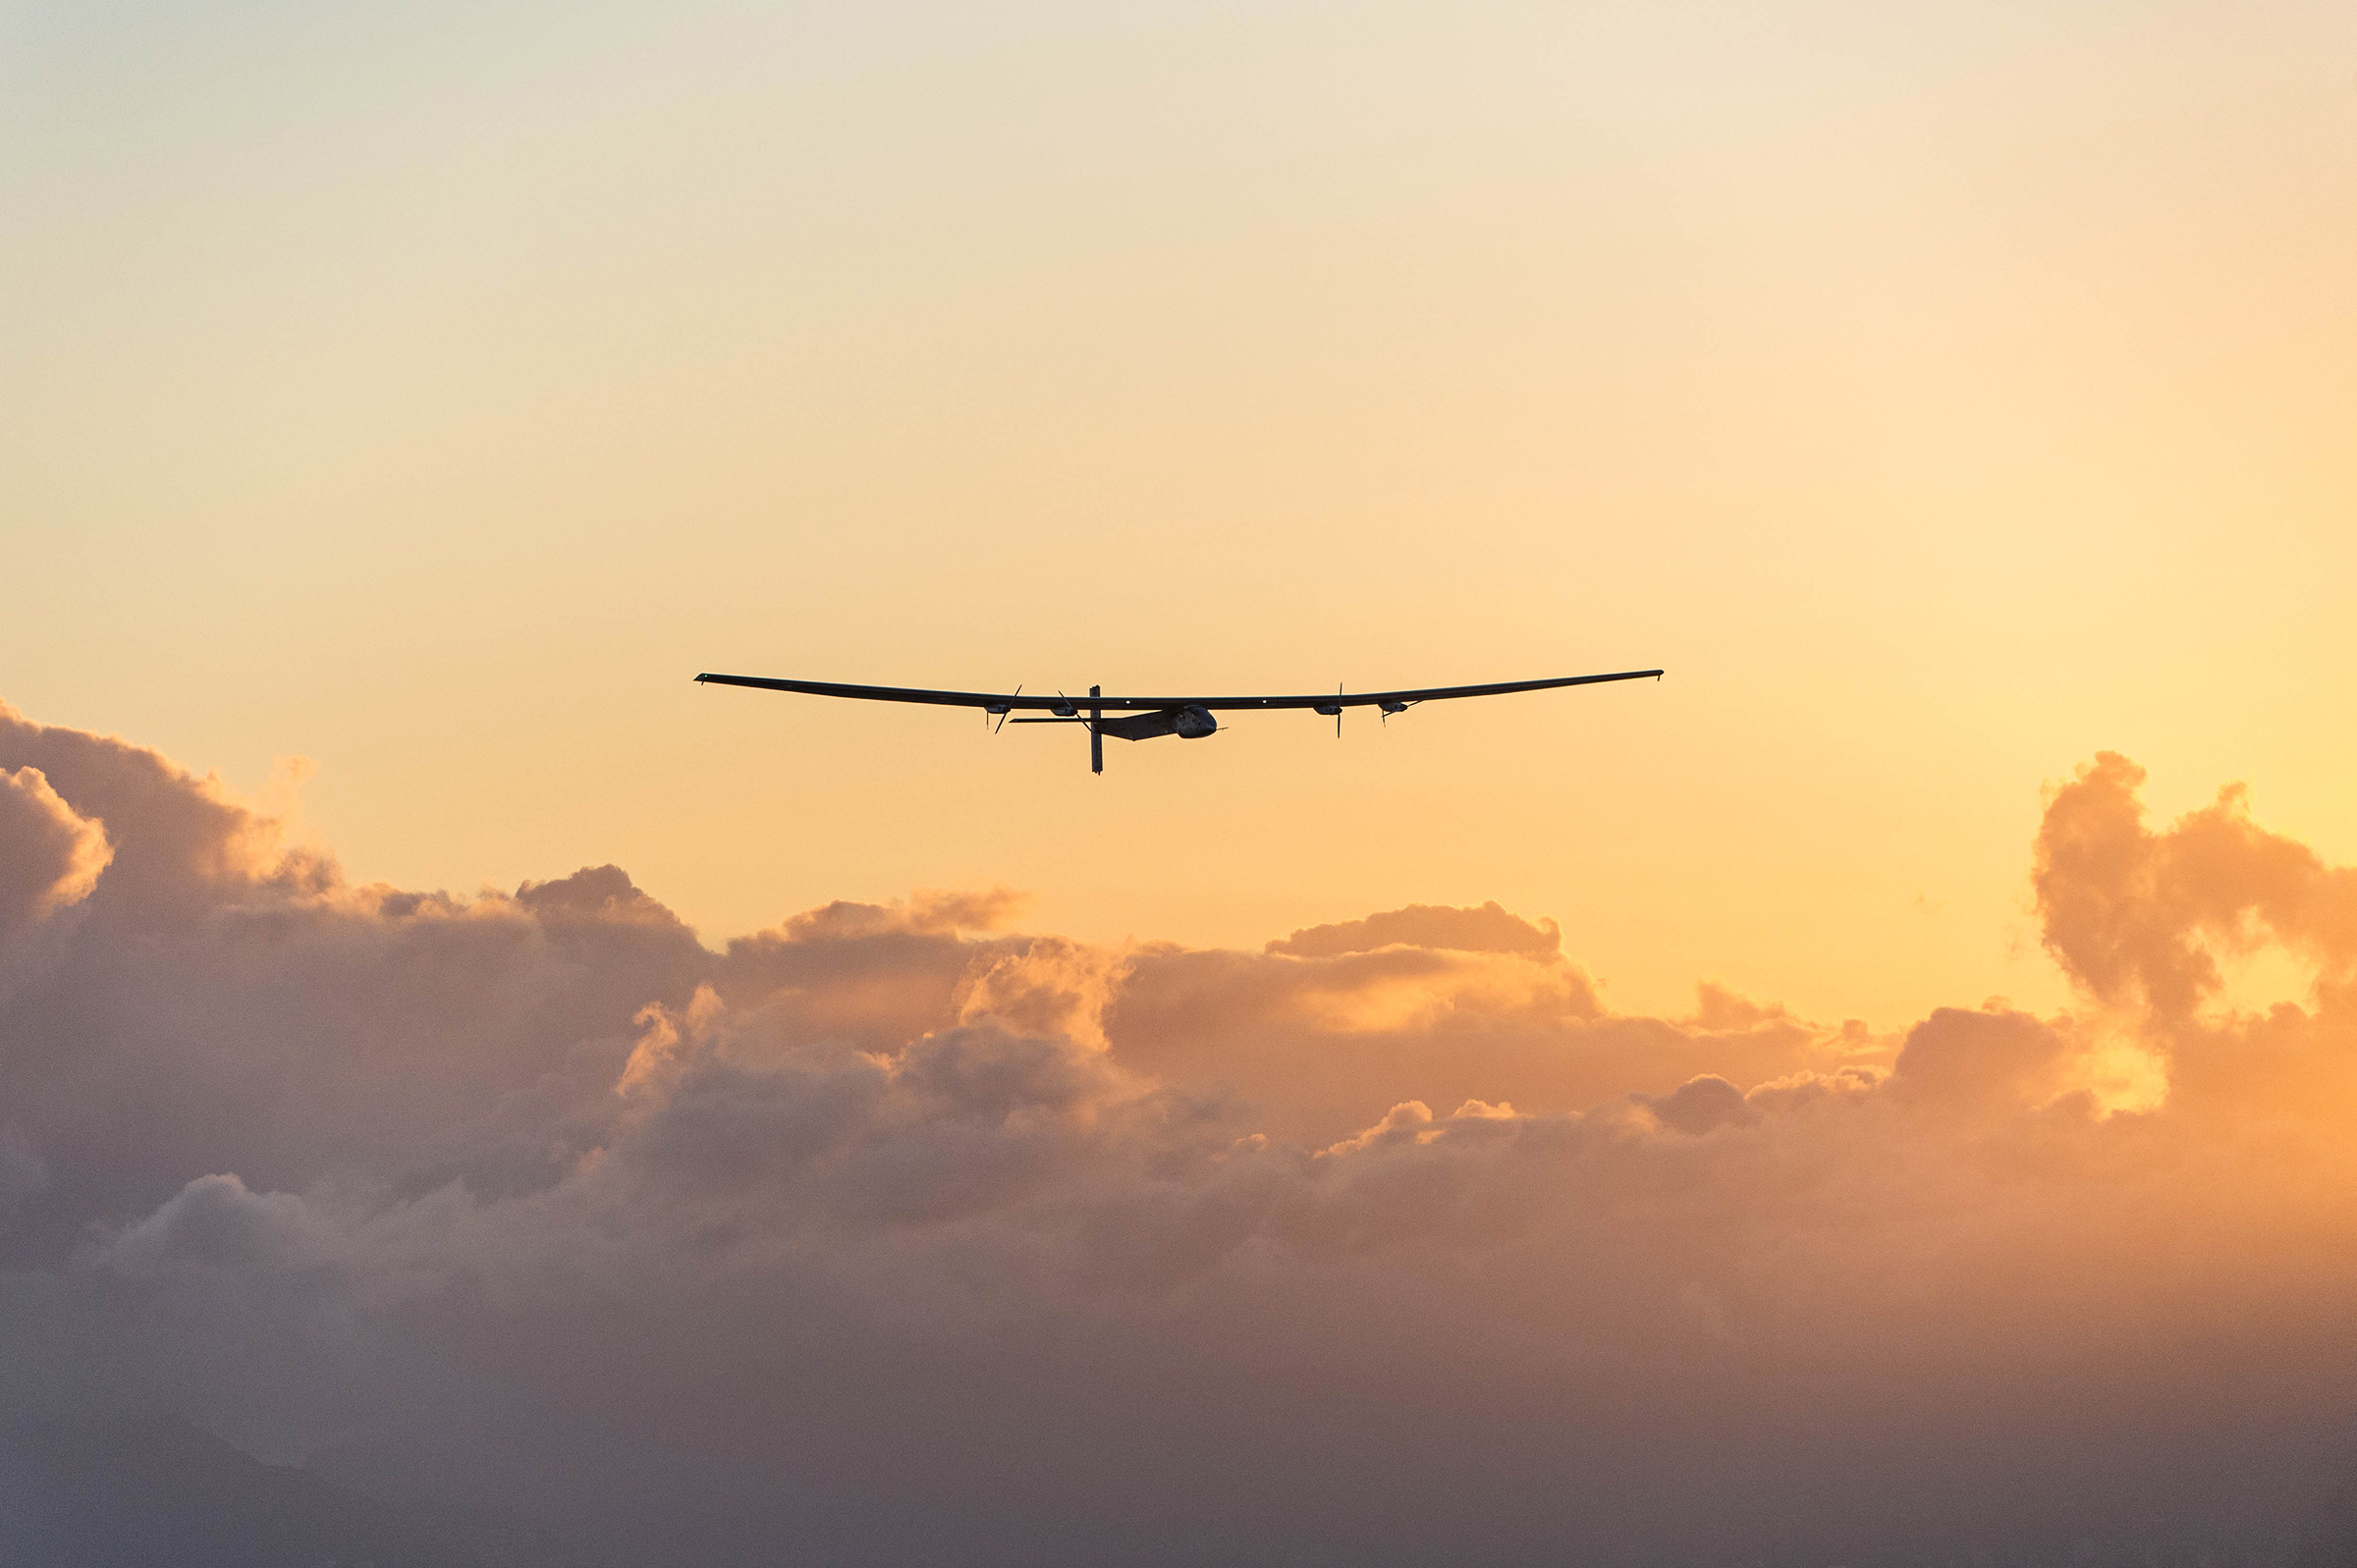 Bertrand Piccard training flight with Solar Impulse 2 in